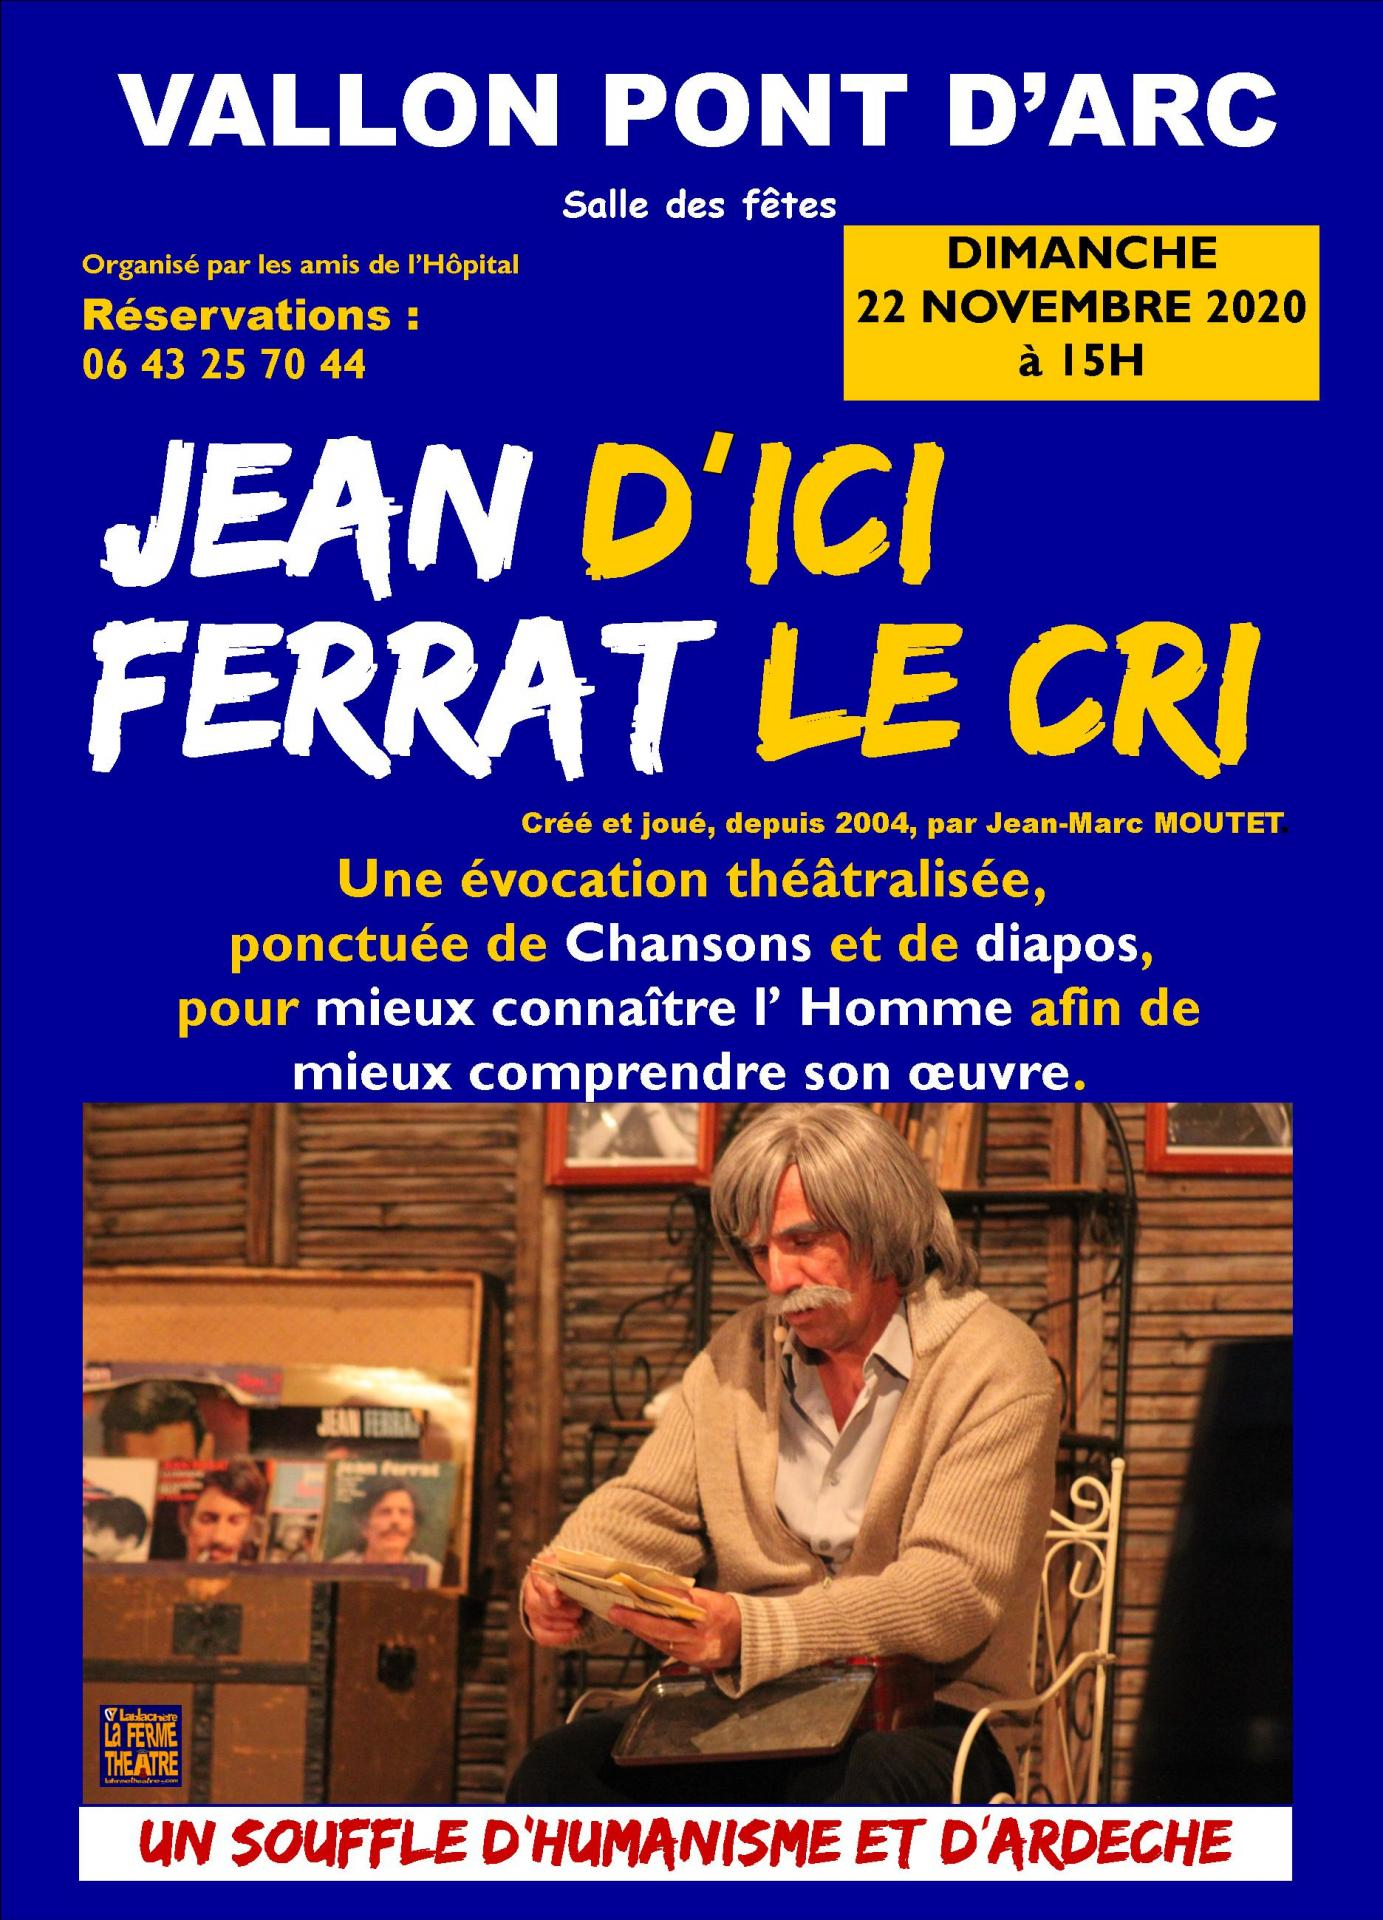 Spectacle sur jean ferrat a vallon pont d arc le 22 11 2020